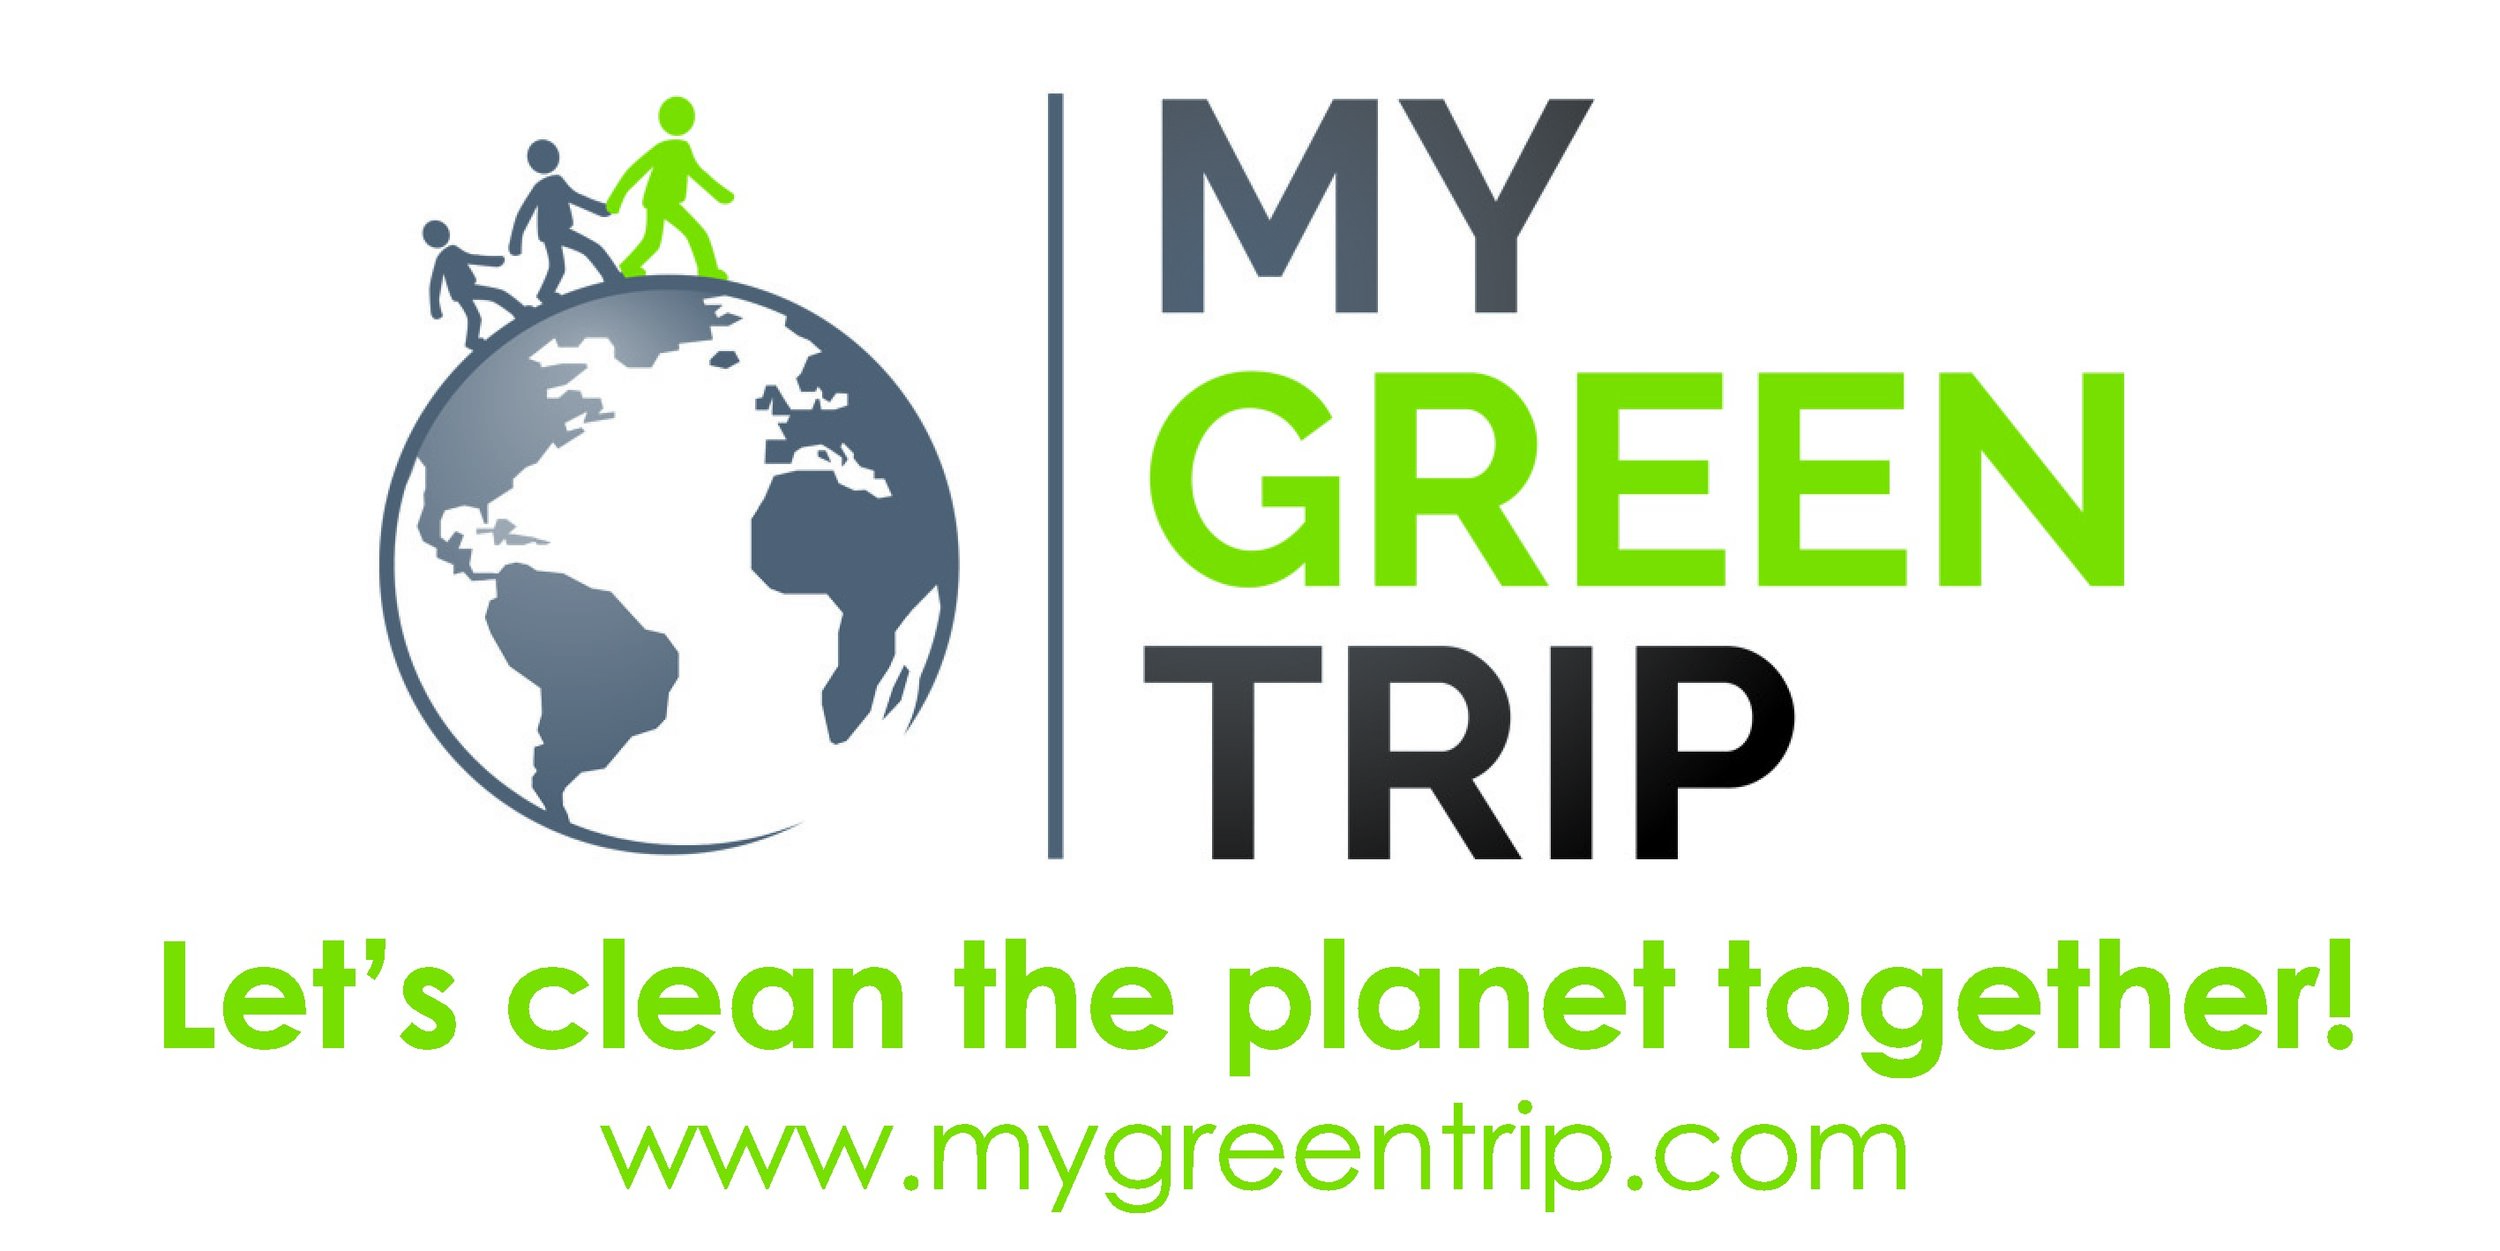 My Green Trip -   Nature clean-ups   My Green Trip is a community of travelers and tourism organisations who pick up trash left behind in nature. Together, for our planet. They have donated reusable clean-up bags to support our efforts to keep our planet clean and connect us with travelers who'd like to join our beach clean-ups.  Check them out!